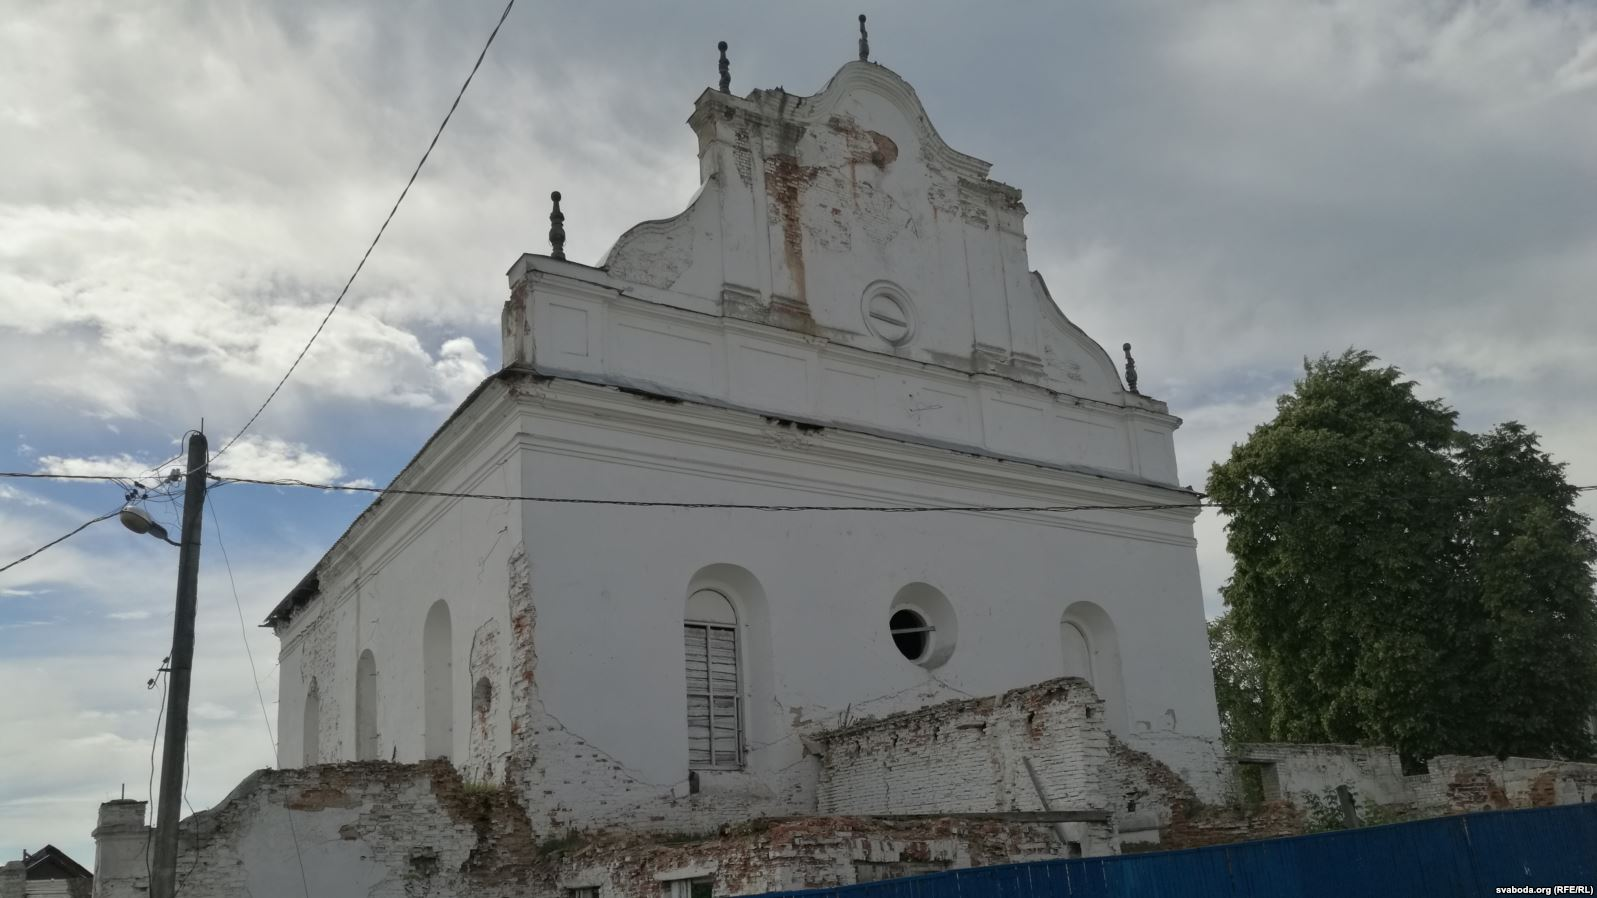 Slonim Synagogue restoration project makes Belarusian headlines